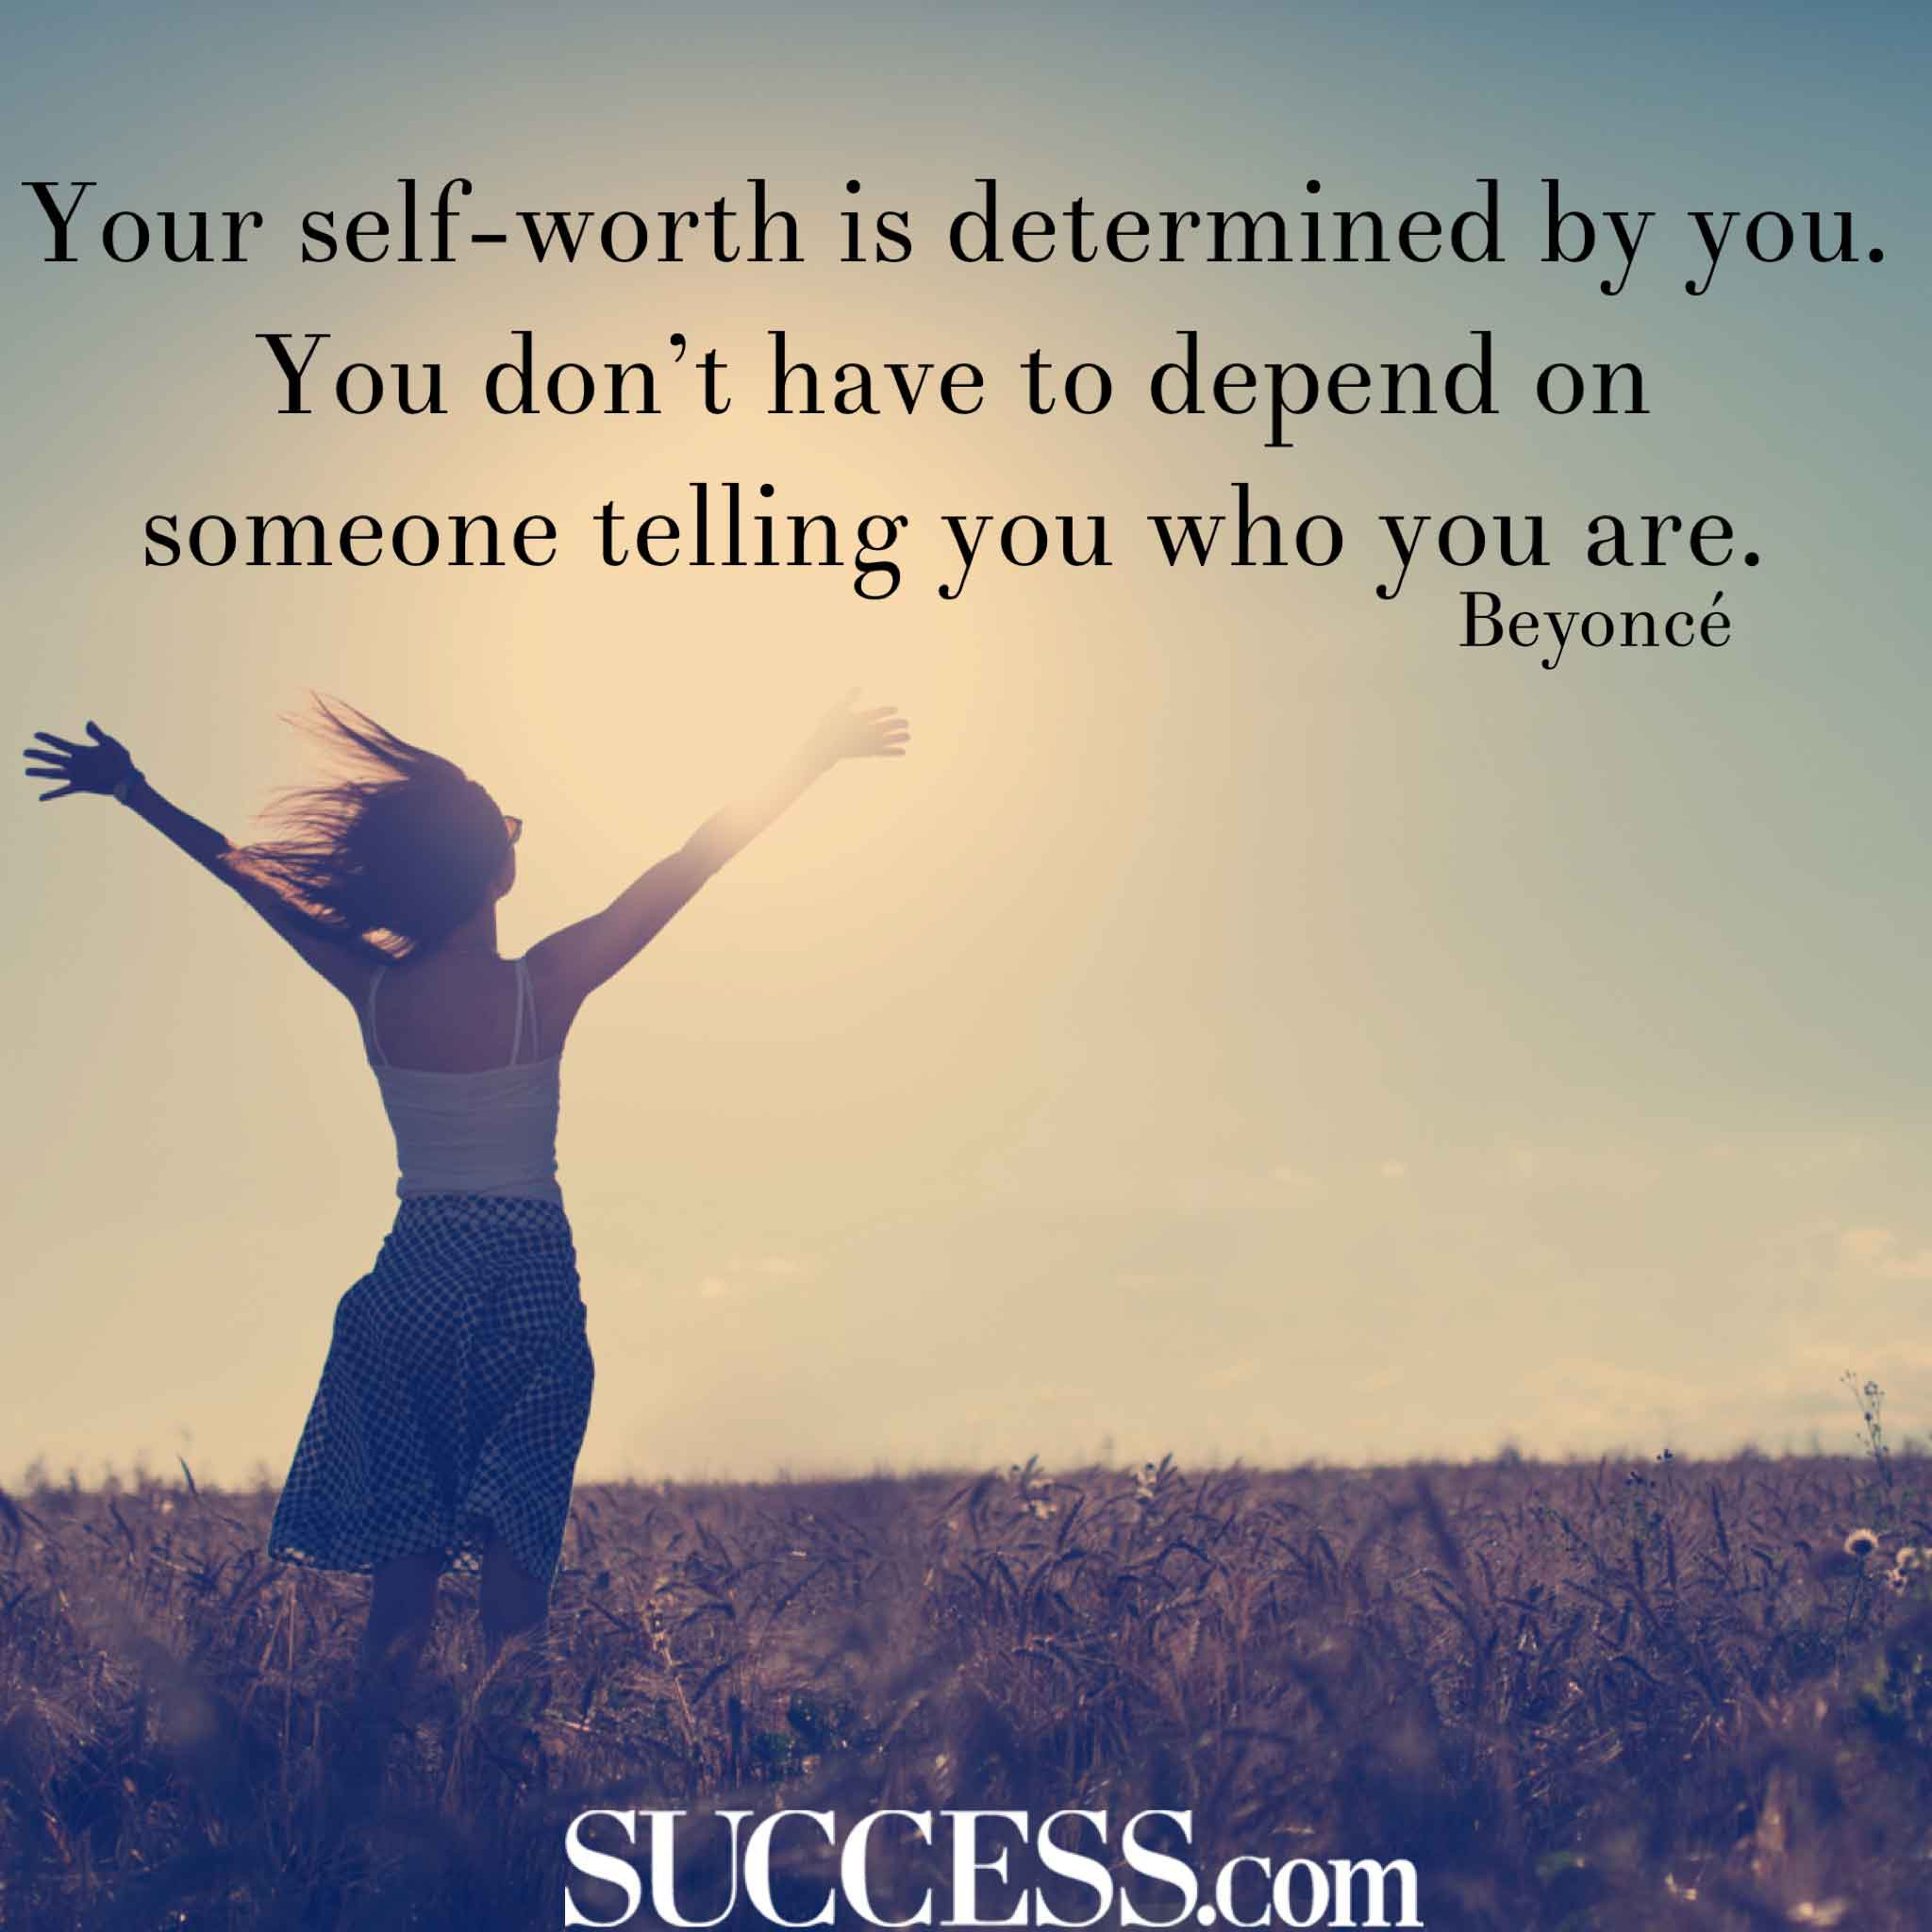 Quotes About Being Yourself: 15 Brave Quotes To Inspire You To Be Yourself